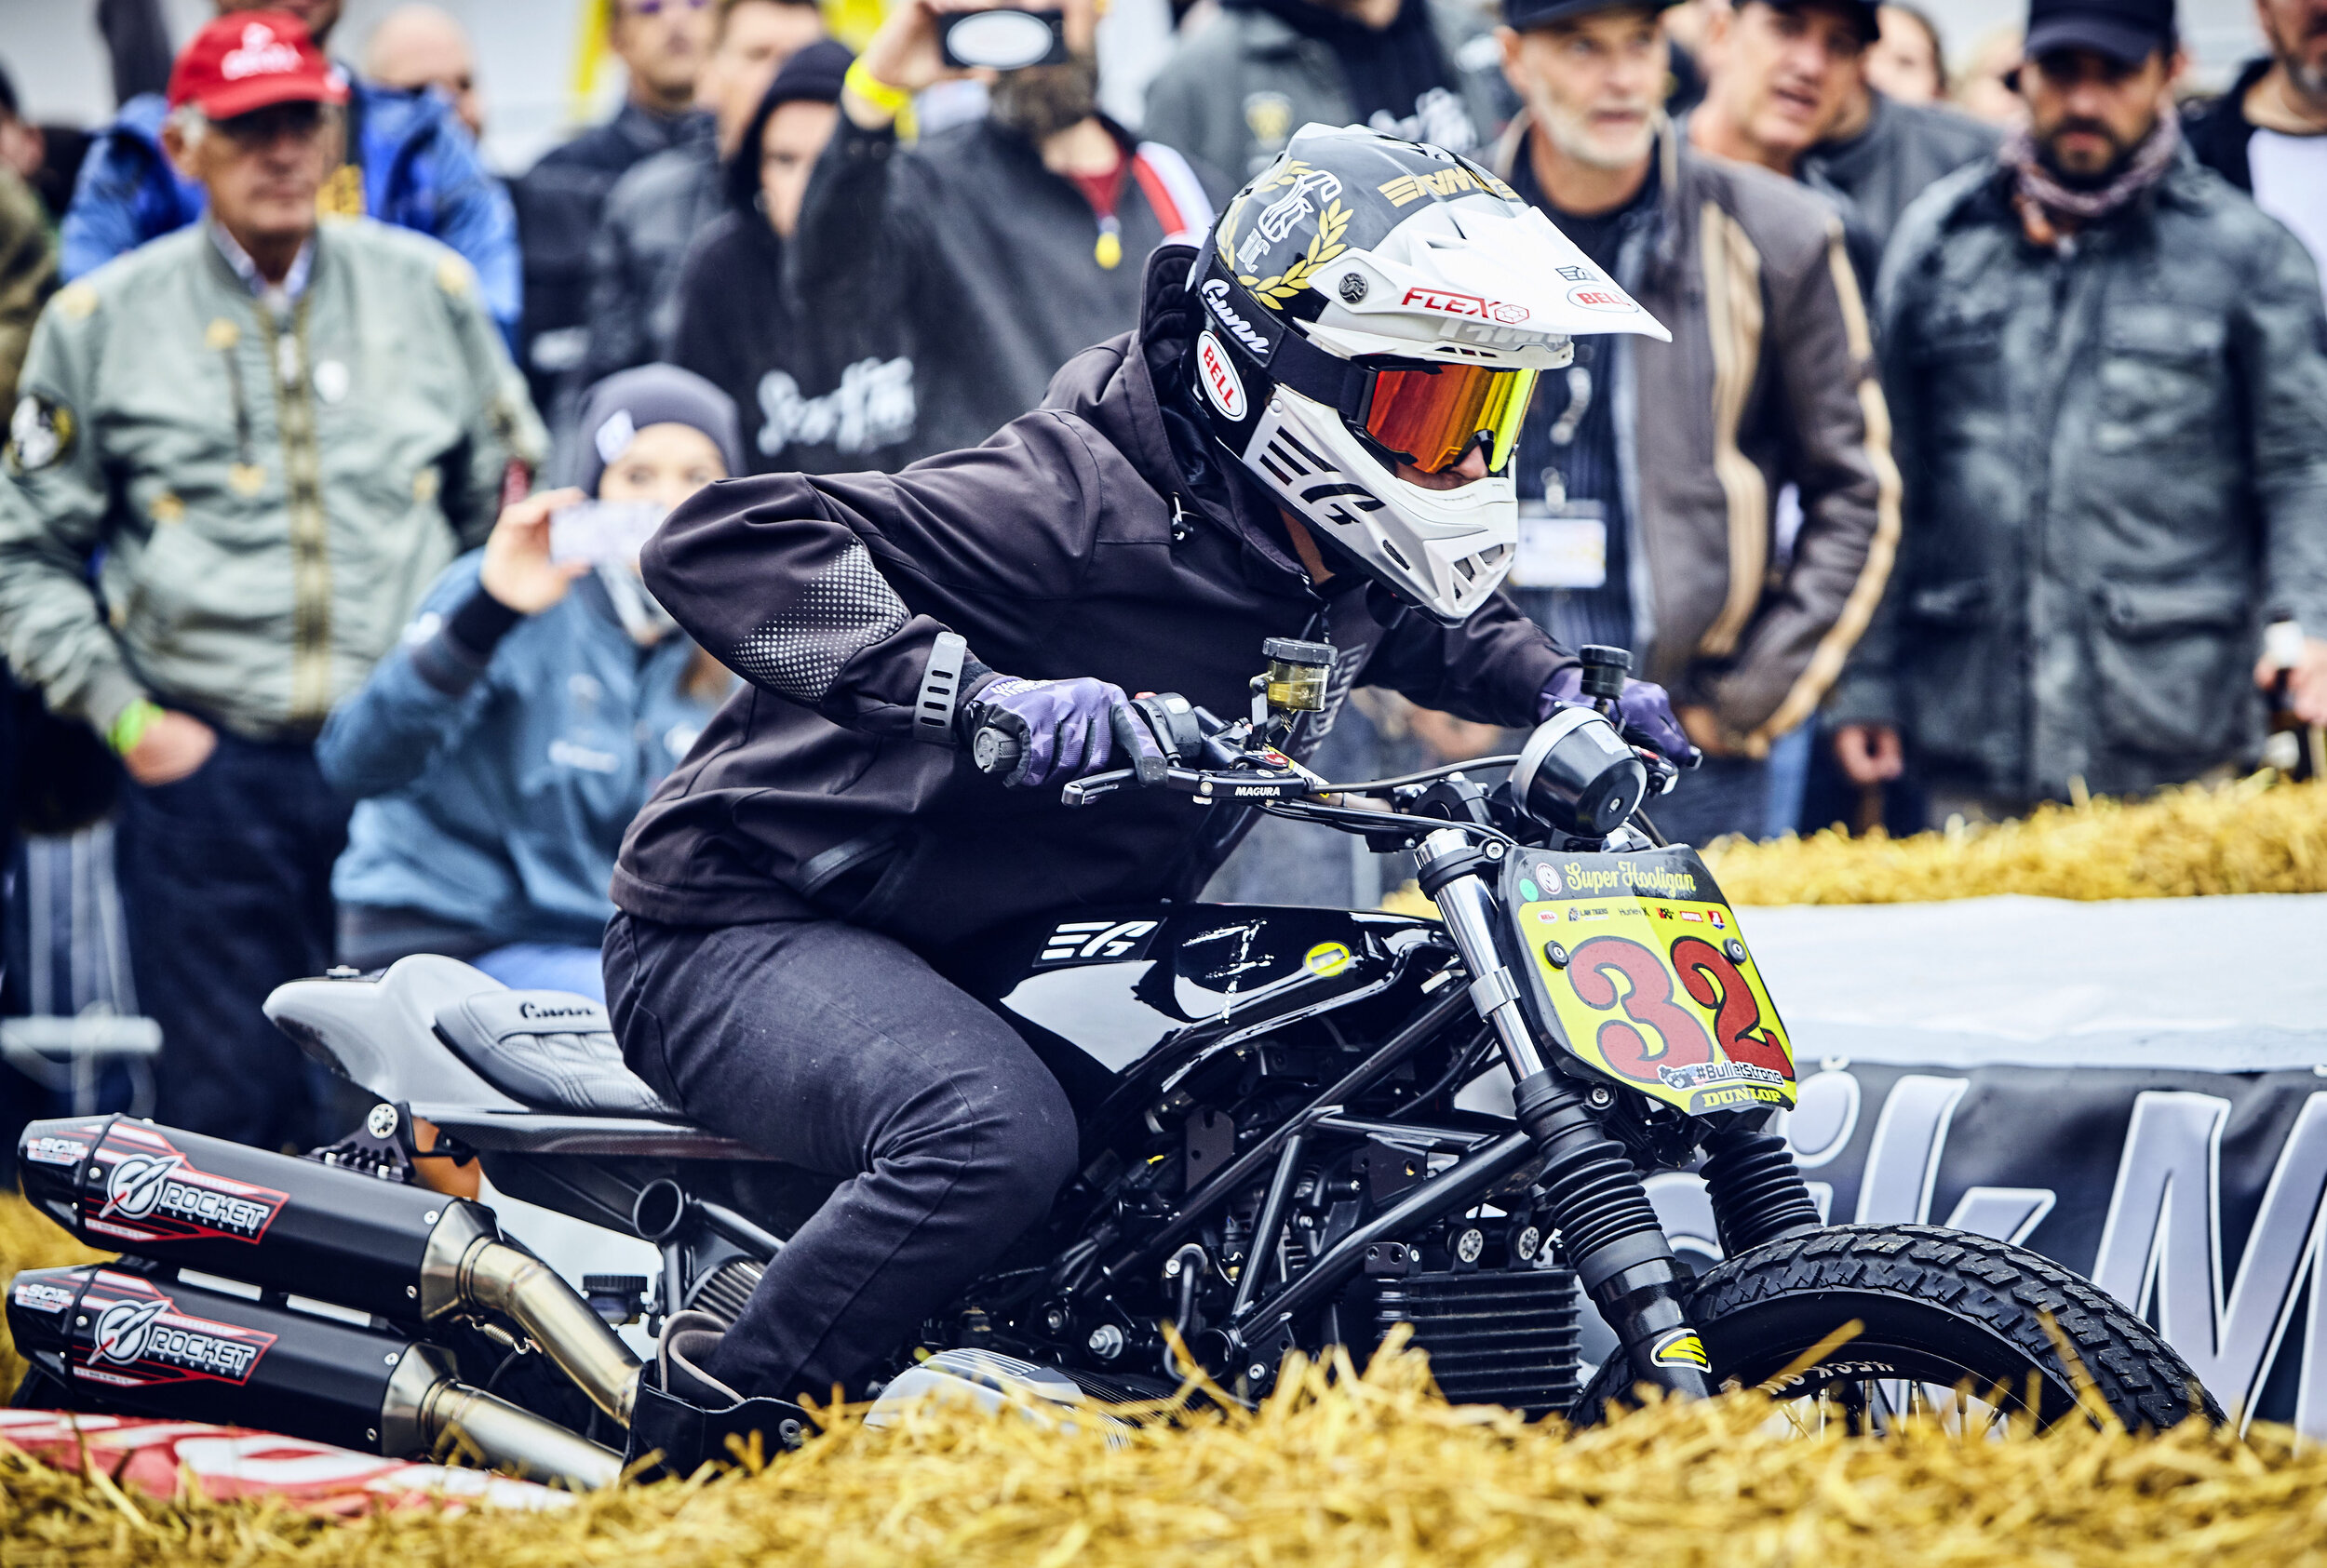 GLEMSECK 101 ~ 2018 - Tackling Germany's hottest motorcycle event, Gunn Style.